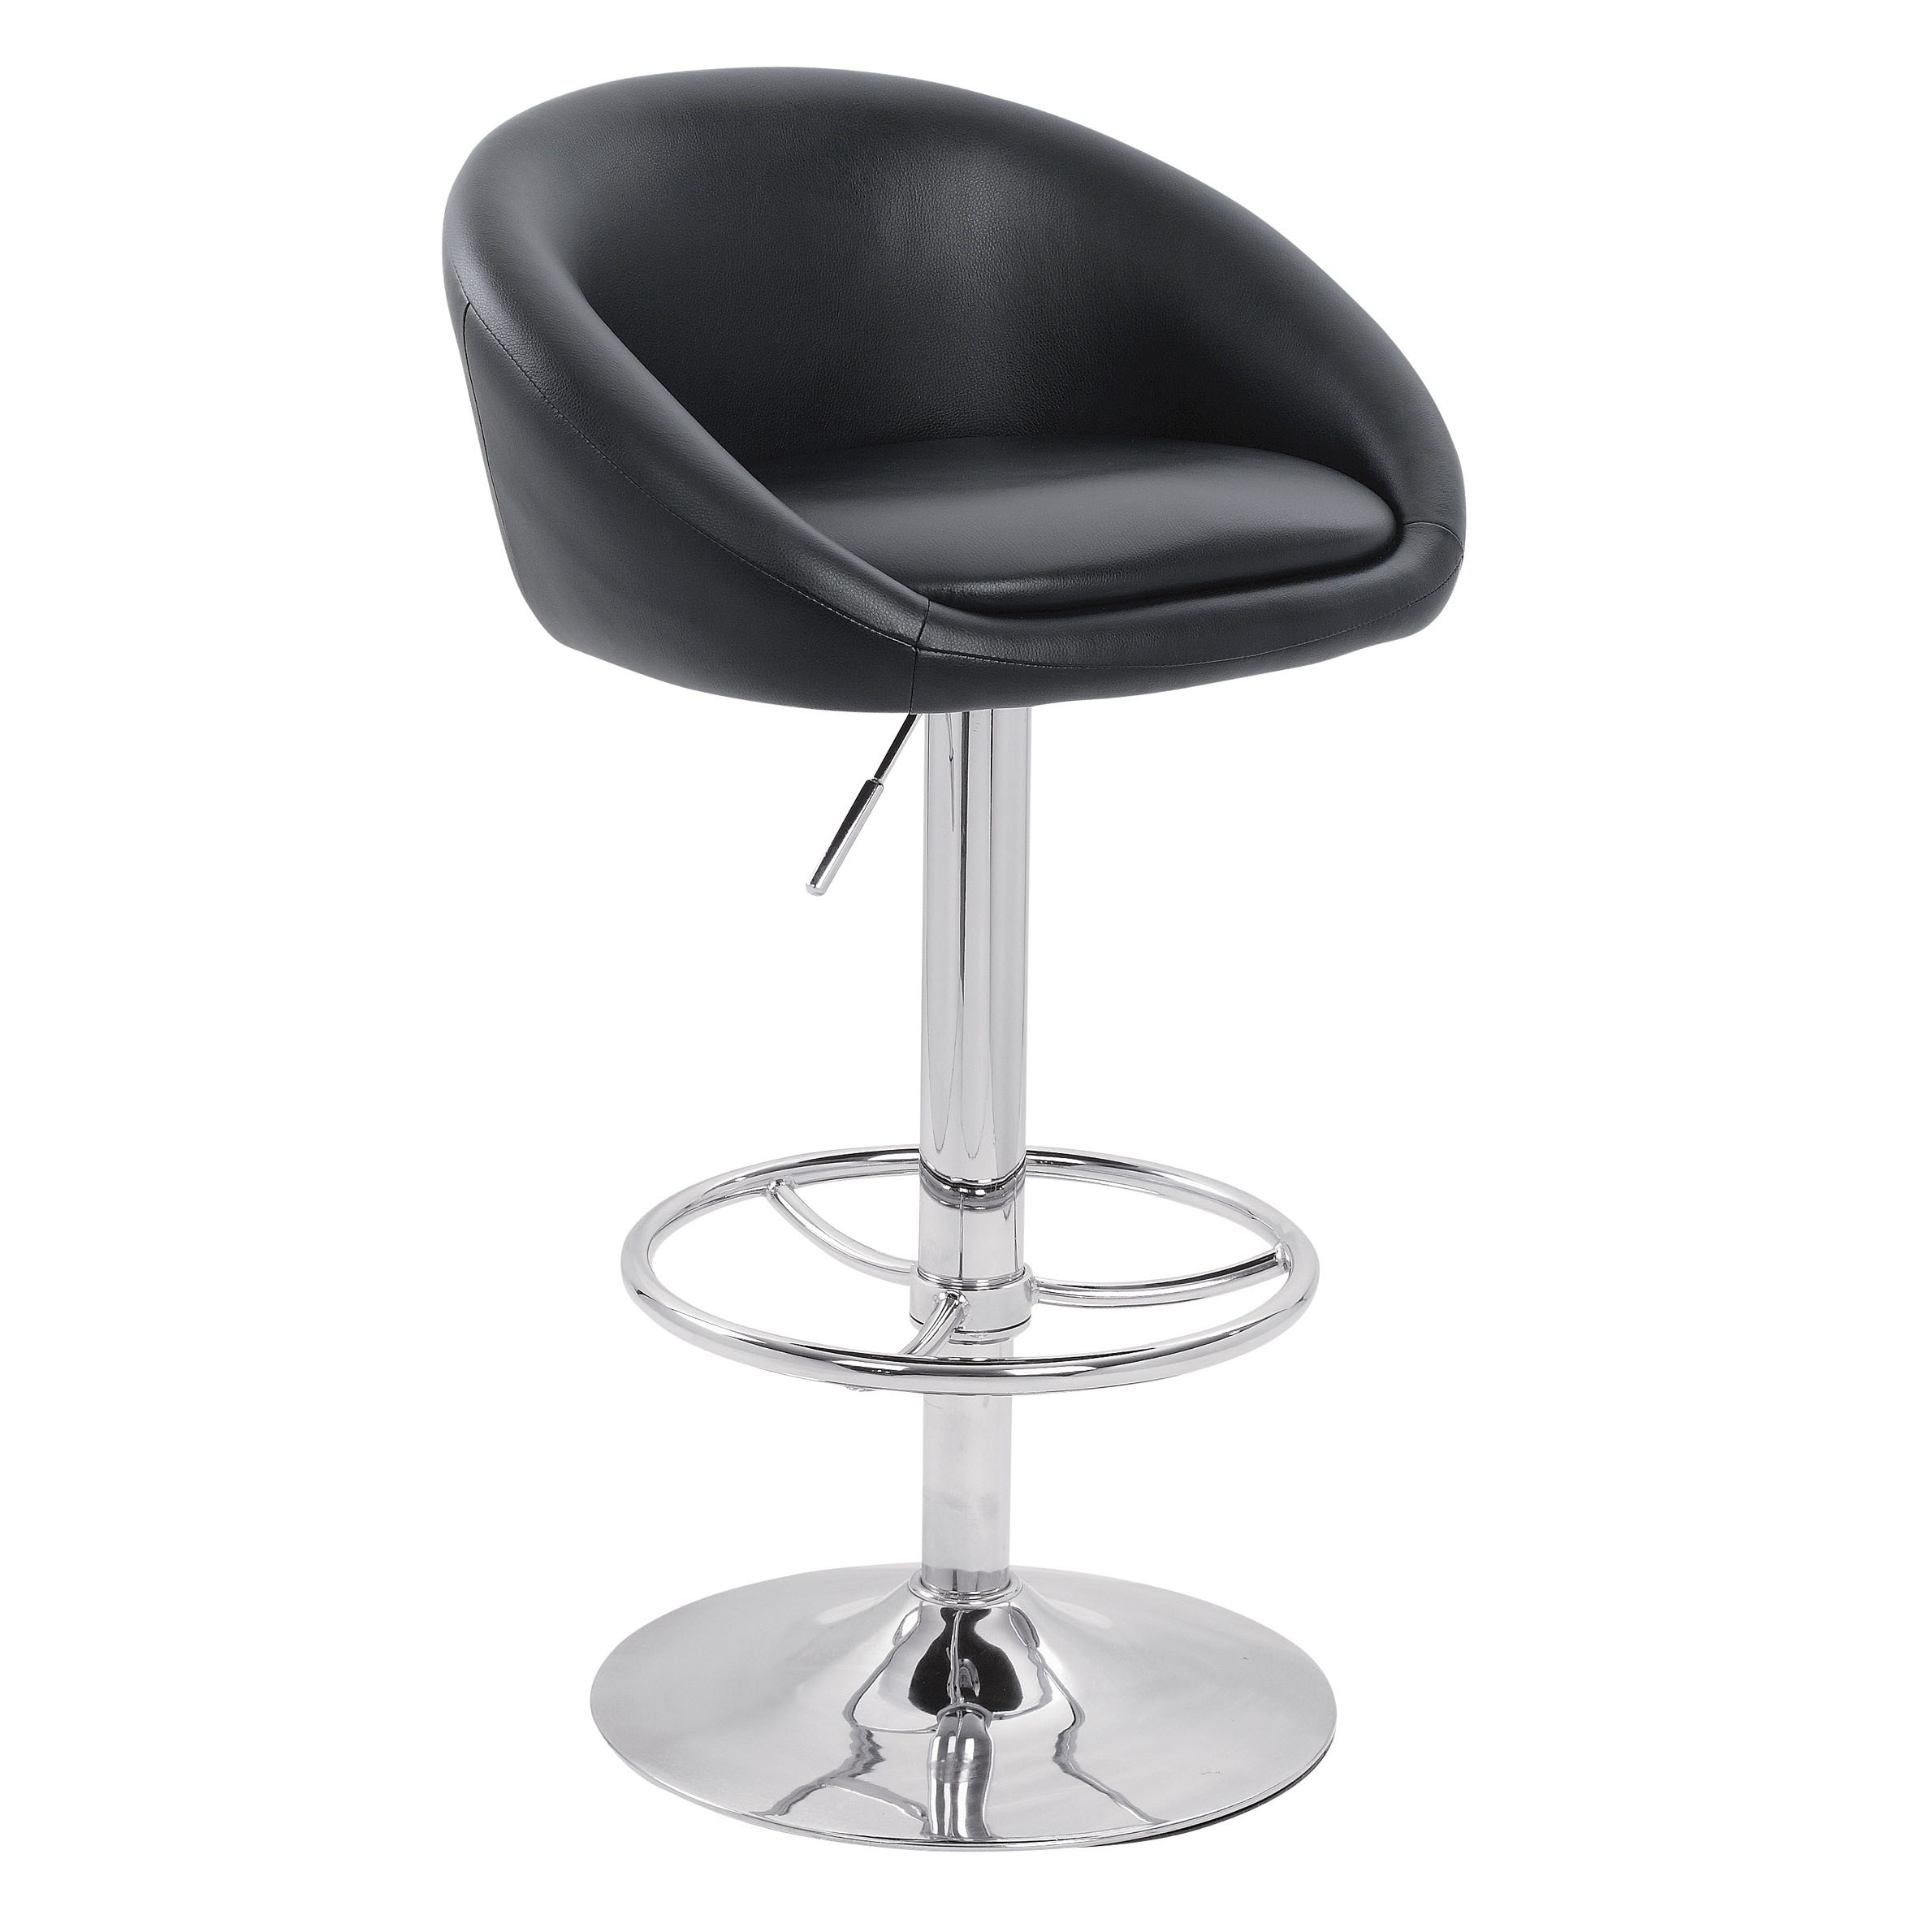 Luca Bar Stool - Black Product Image